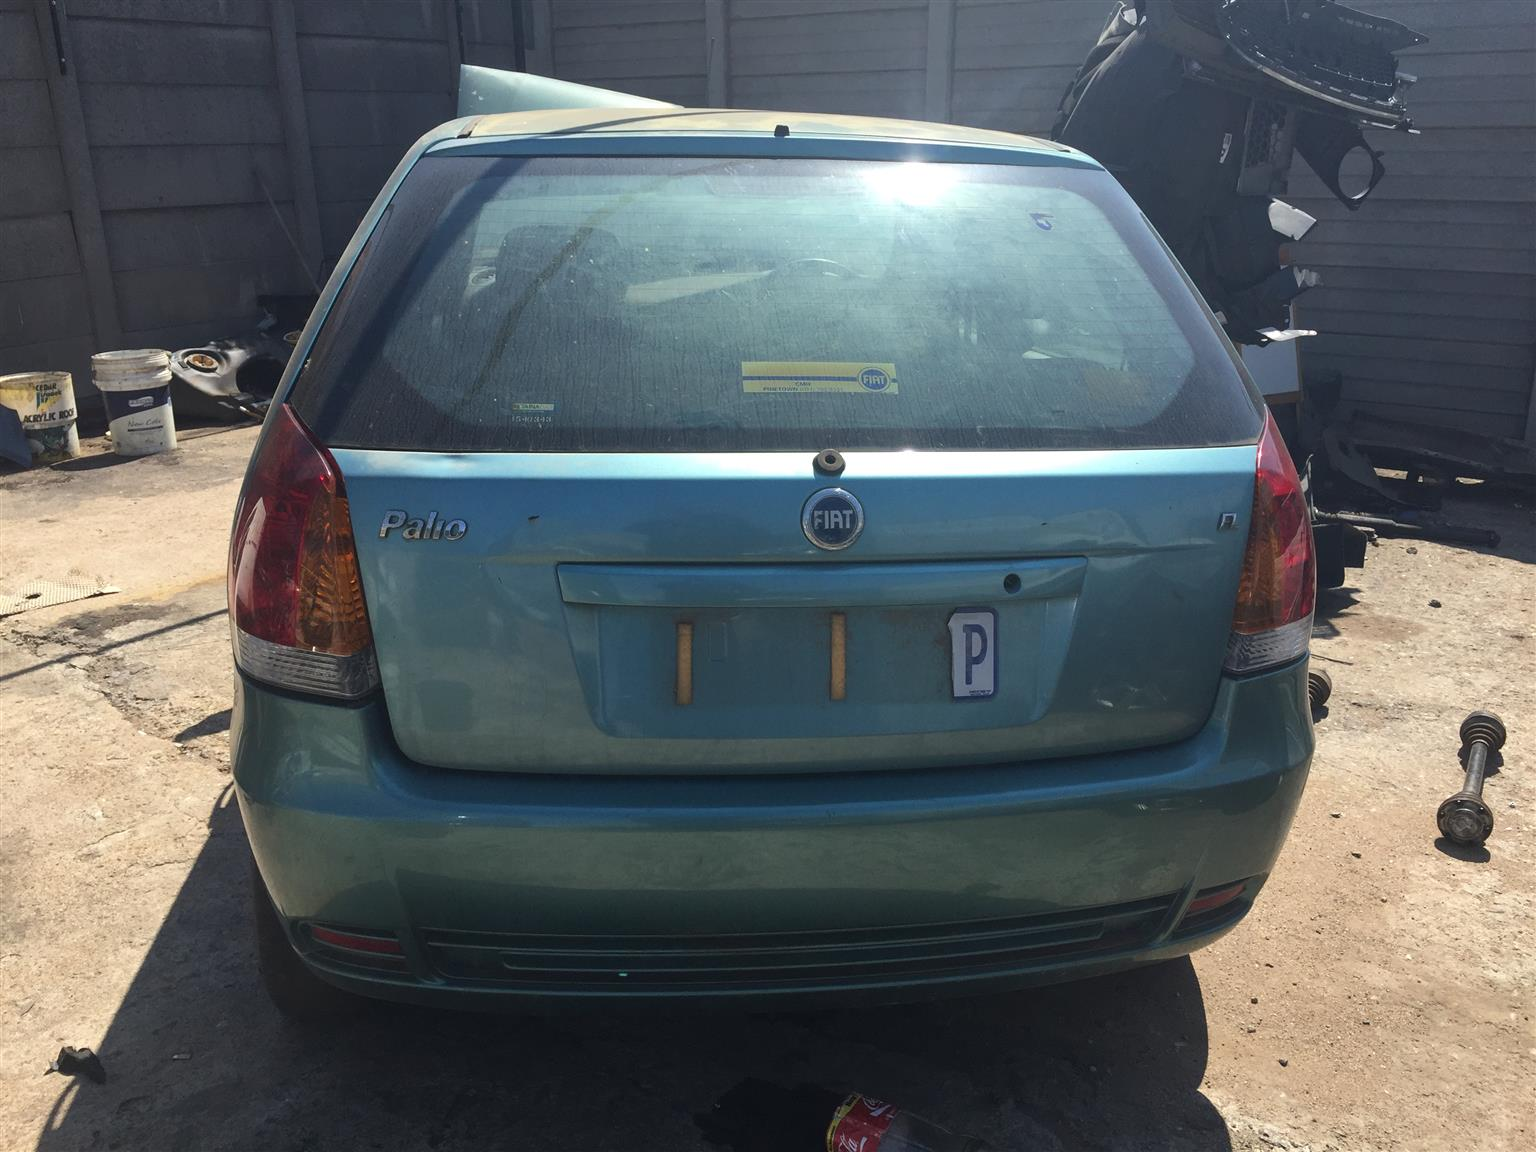 FIAT PALIO 1.2 STRIPPING FOR PARTS DOORS FOR SALE